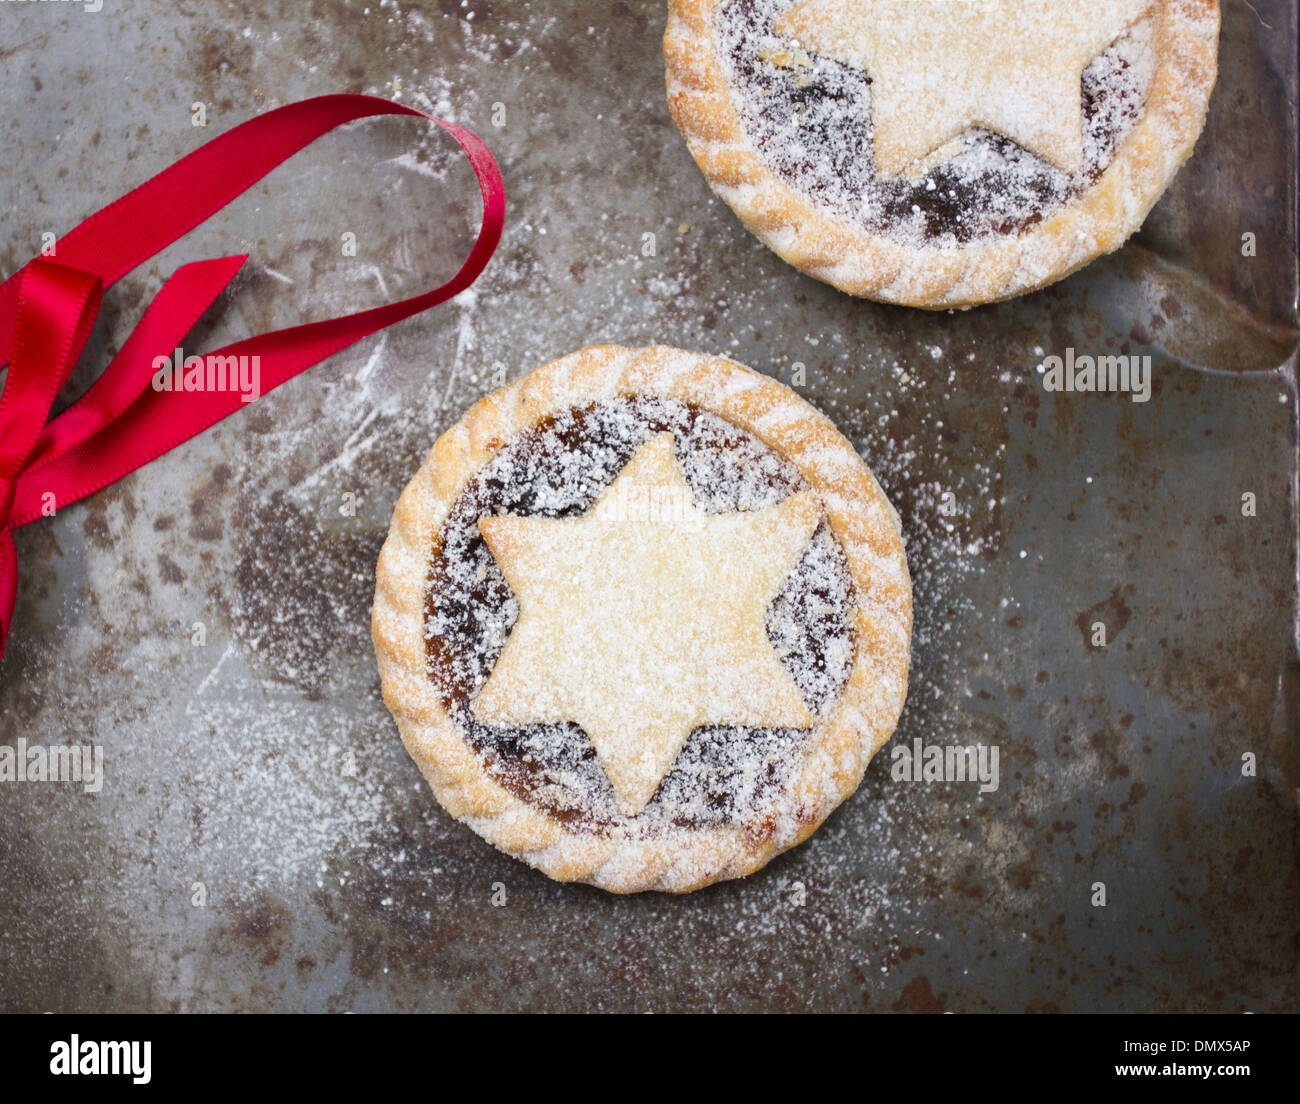 Home made icing sugar dusted mince pies on grey rustic surface with red ribbon - Stock Image